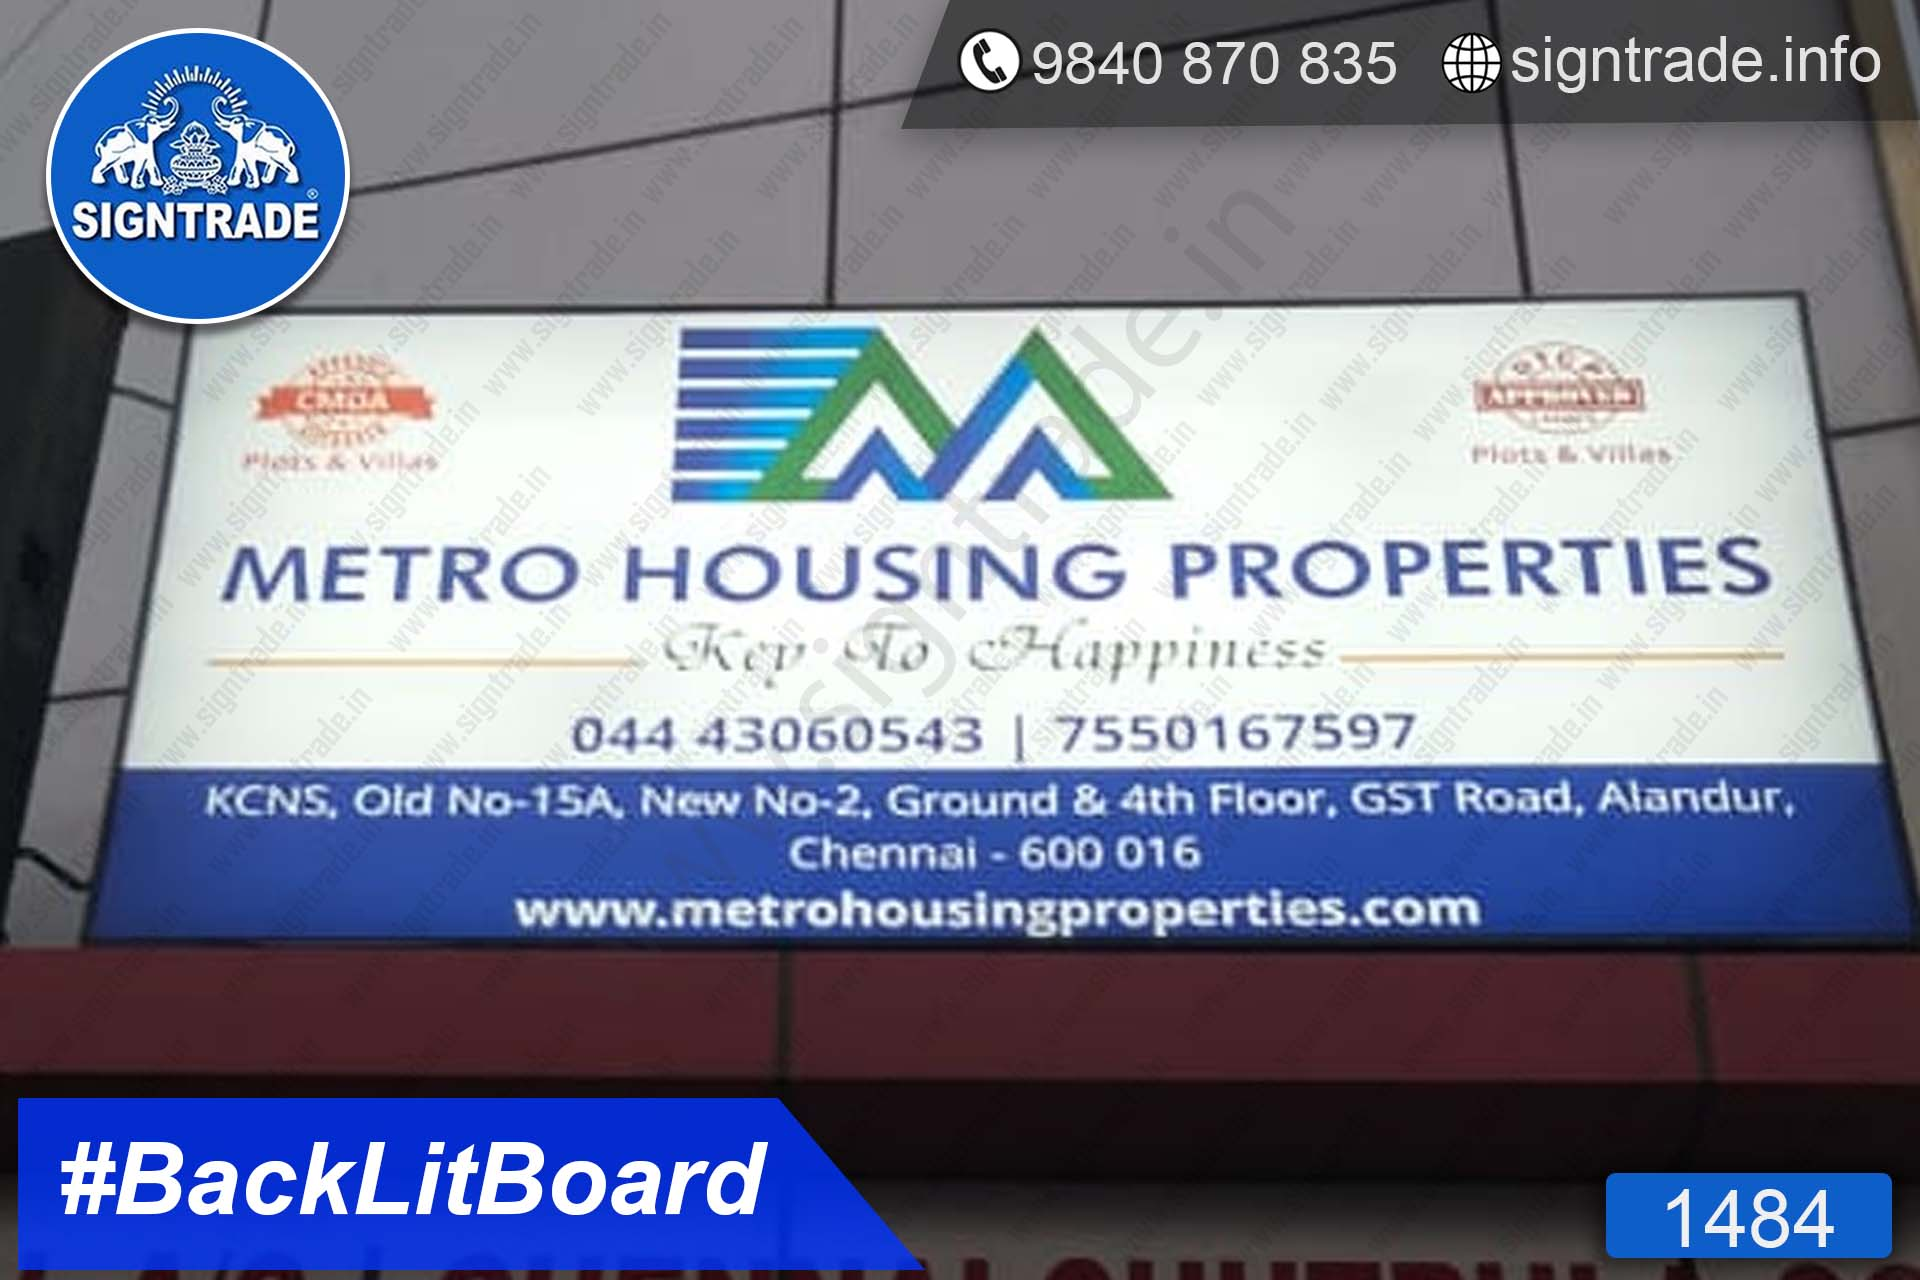 Metro Housing Properties - Alandur - Chennai - SIGNTRADE - Digital Printing Service, BackLit Flex Board Manufacturers in Chennai